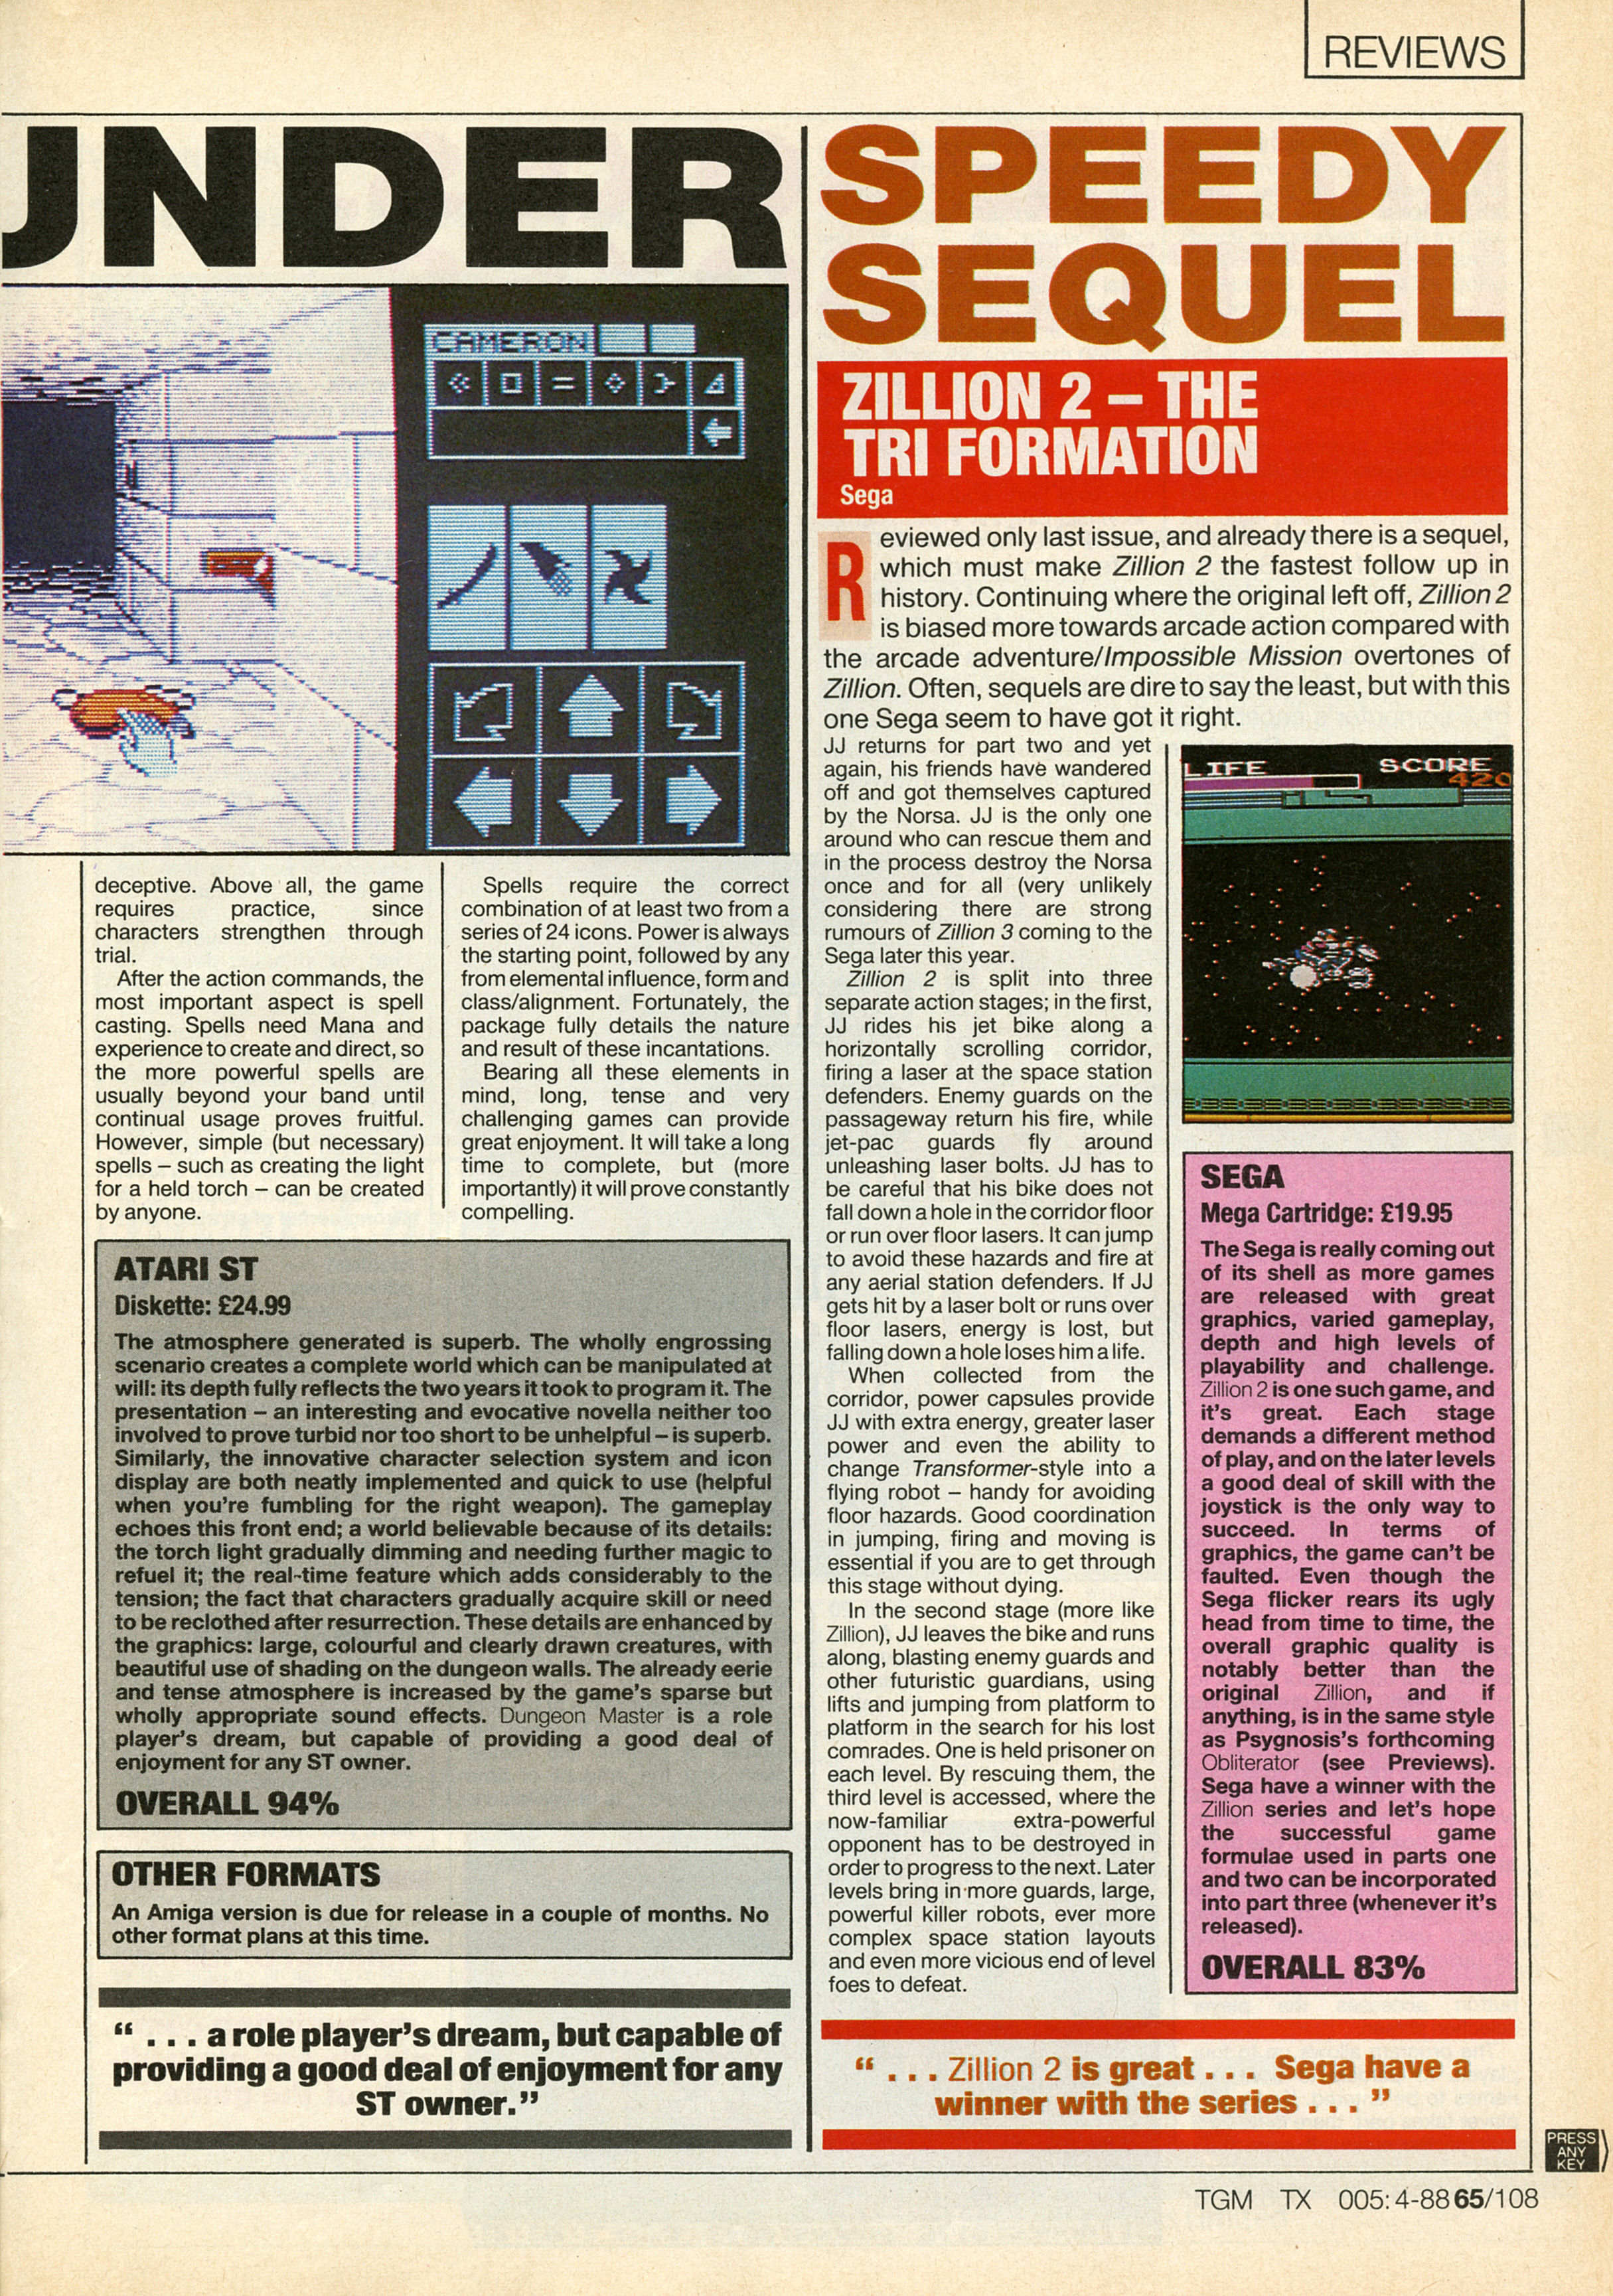 Dungeon Master for Atari ST Review published in British magazine 'The Game Machine', Issue #5, April 1988, Page 65